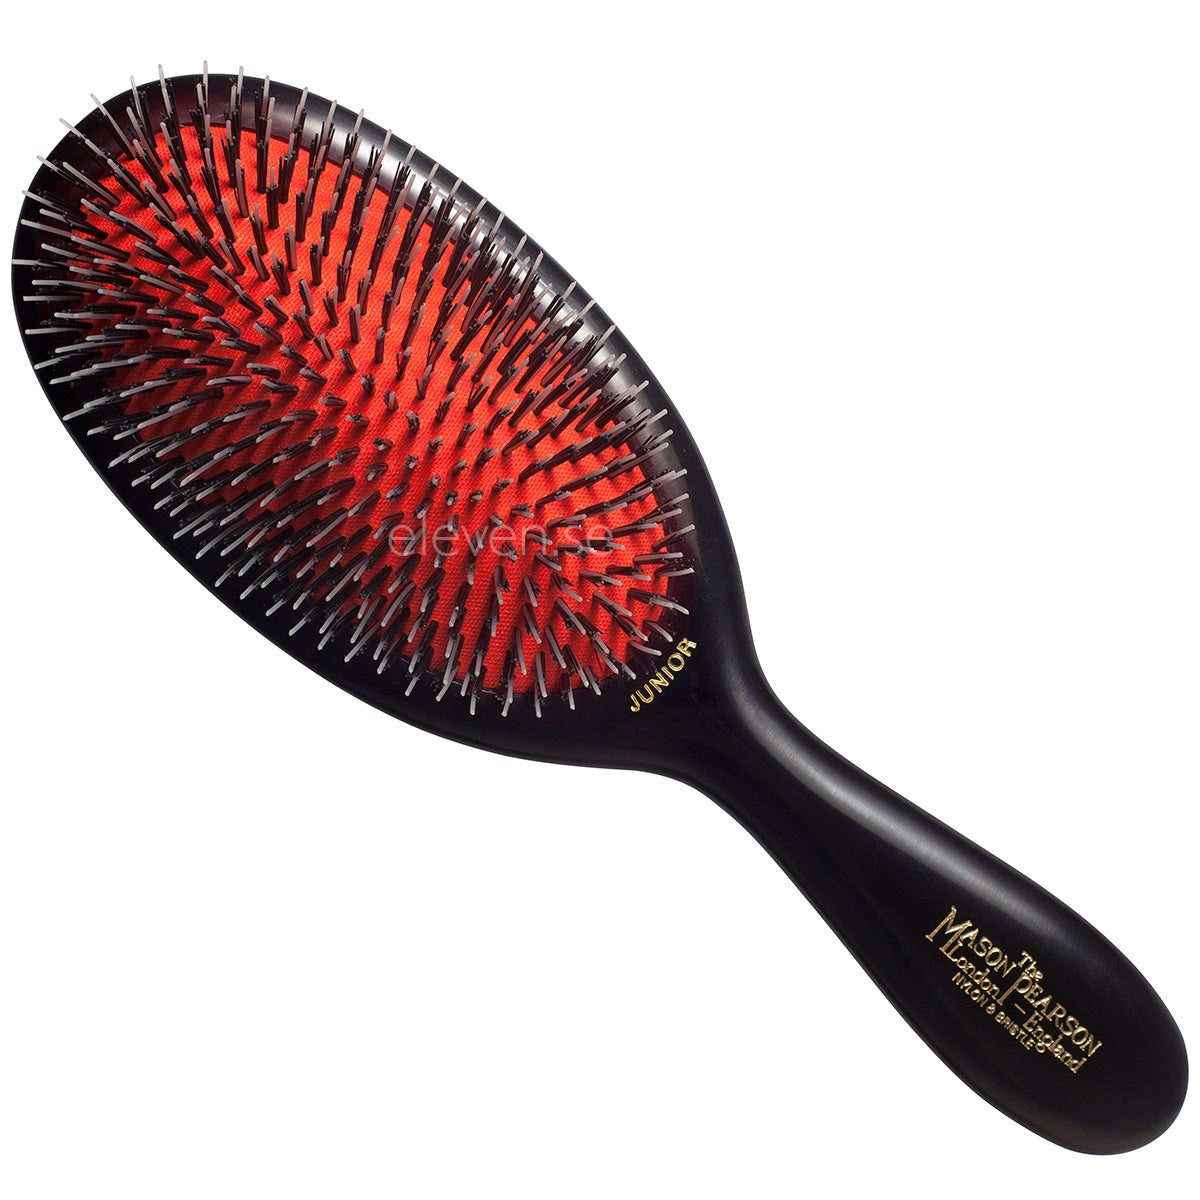 Mason Pearson Junior Bristle & Nylon, Dark Ruby